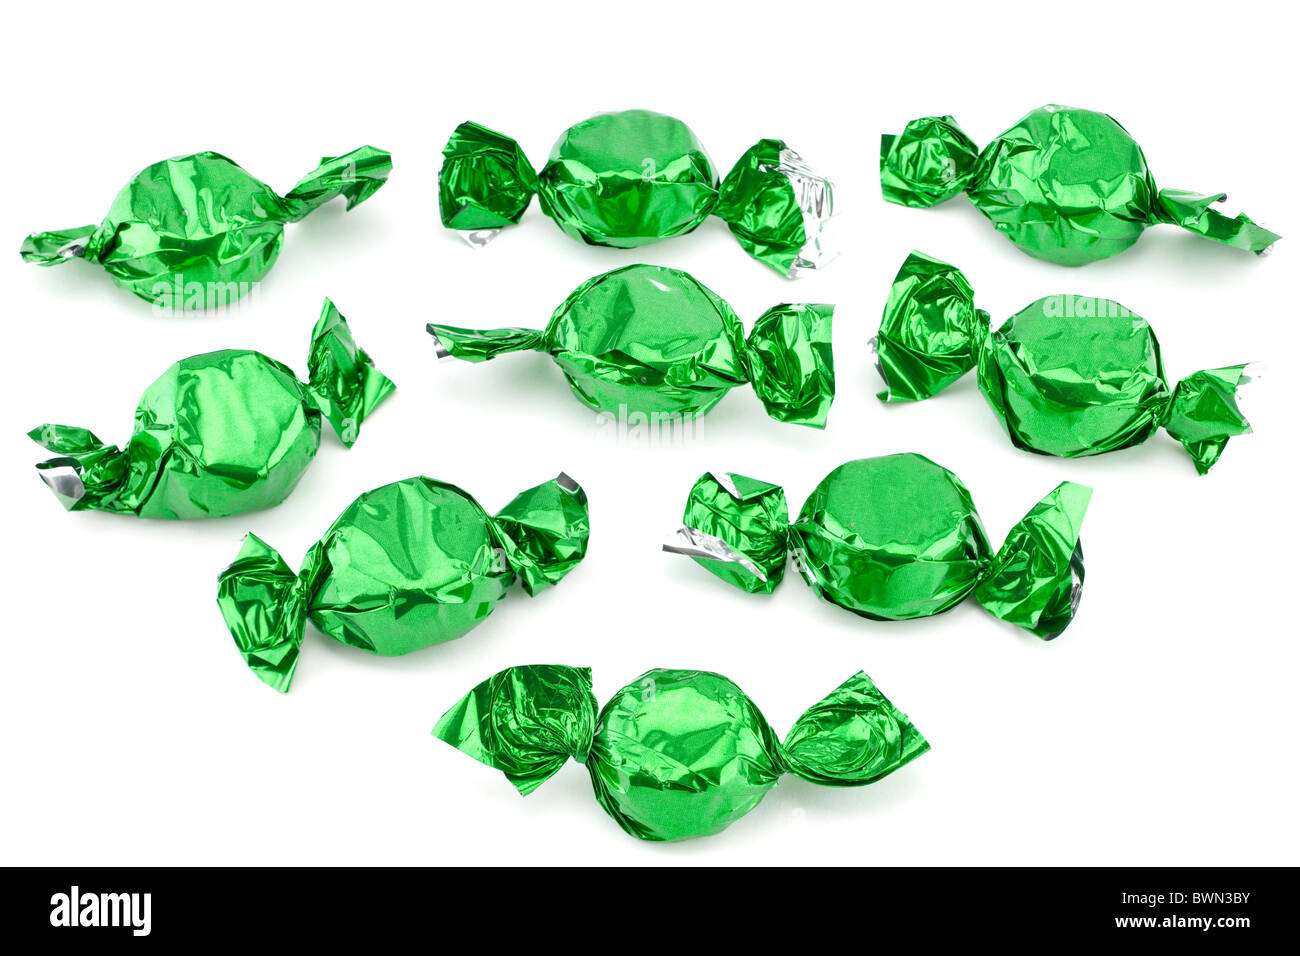 Pile of chocolate sweets wrapped in green silver foil - Stock Image